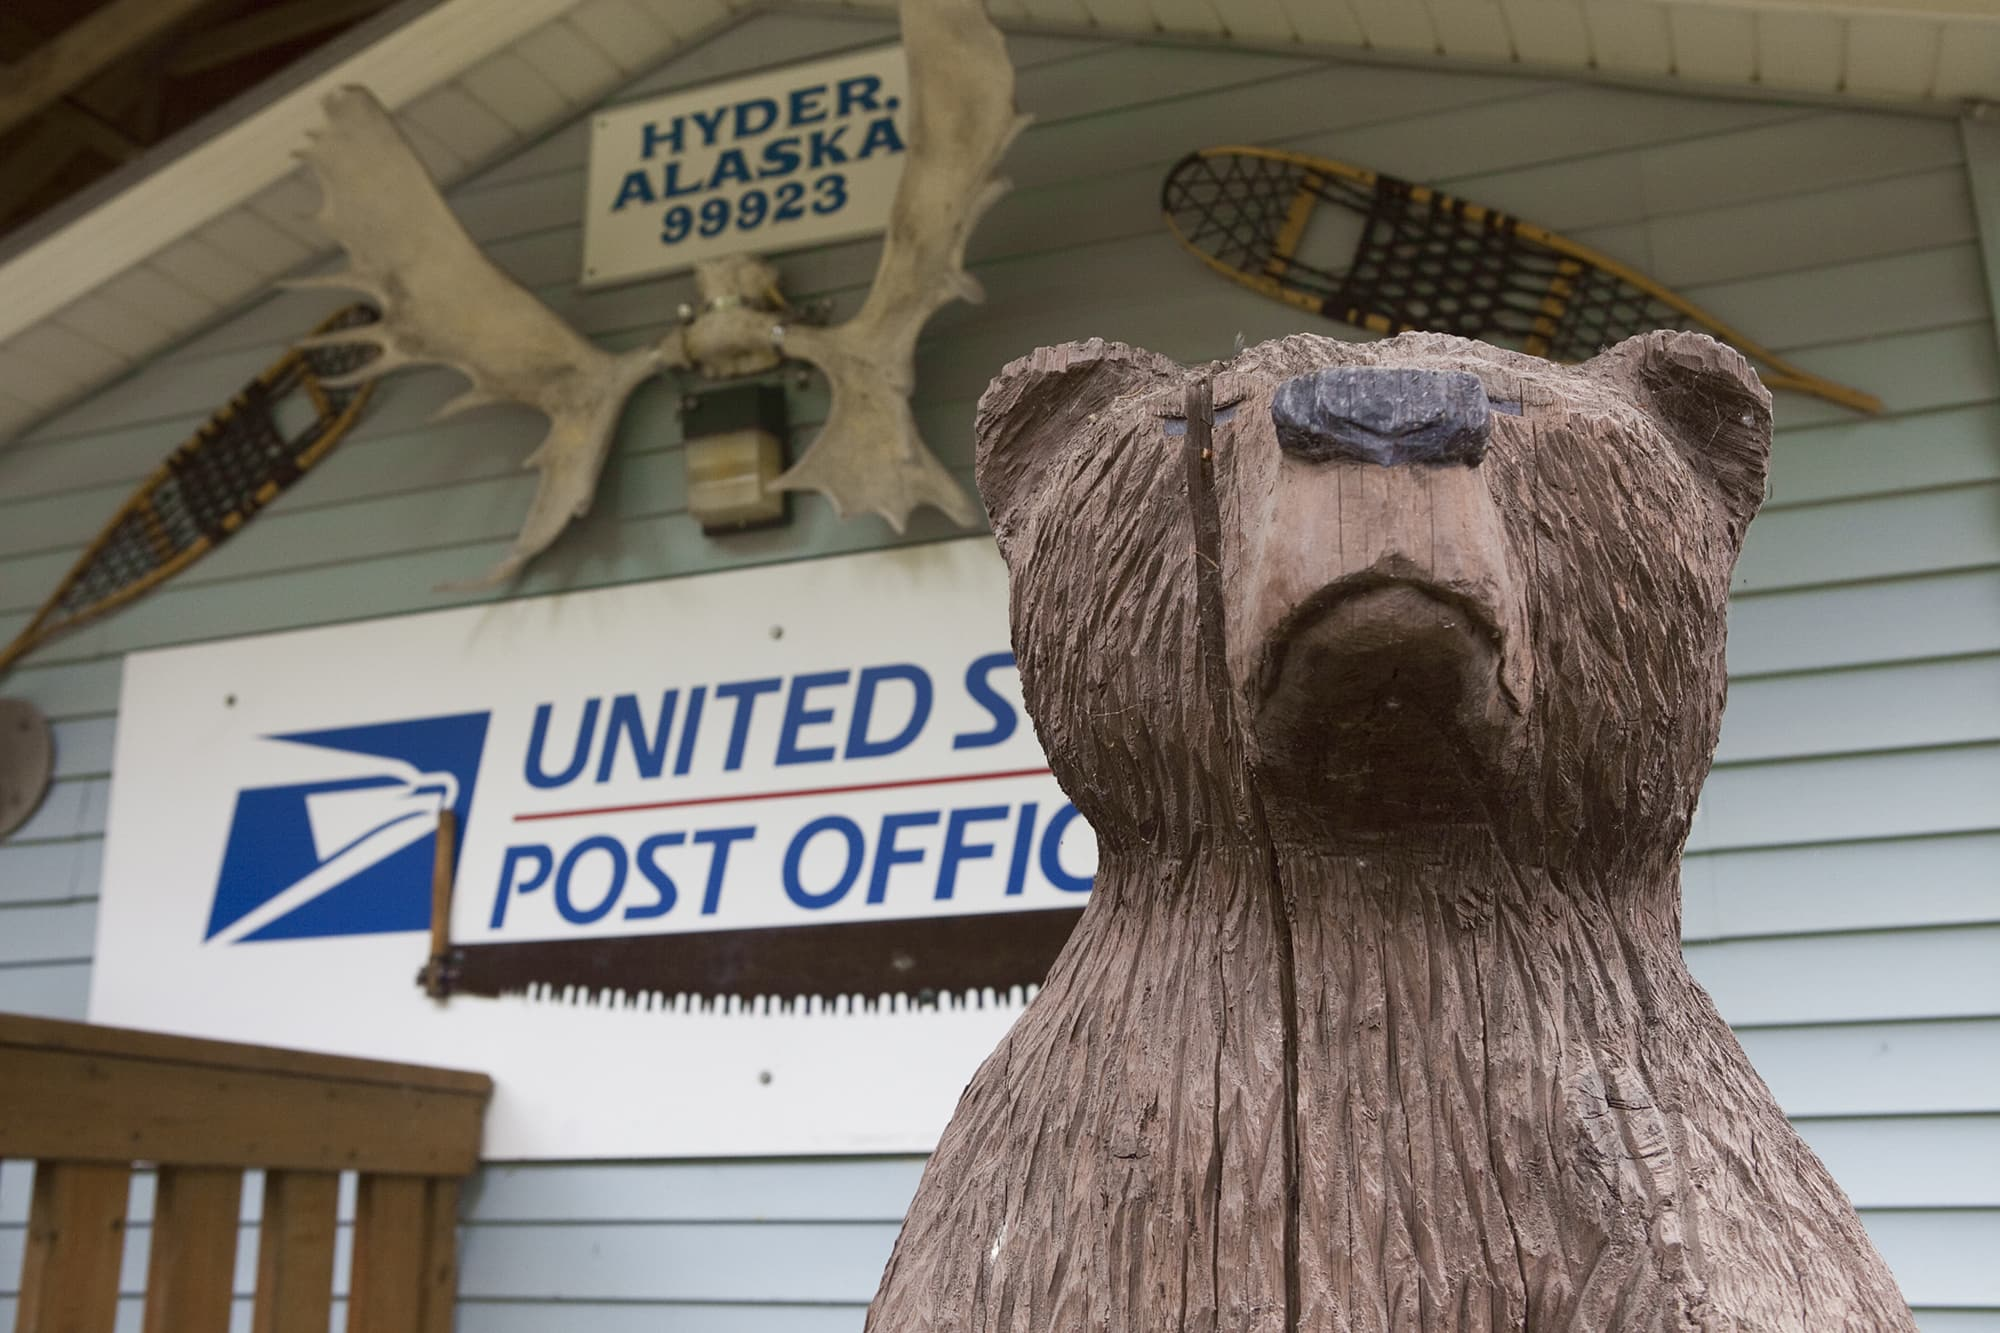 Bear in the post office in Hyder, Alaska - Things to do in Hyder, Alaska.